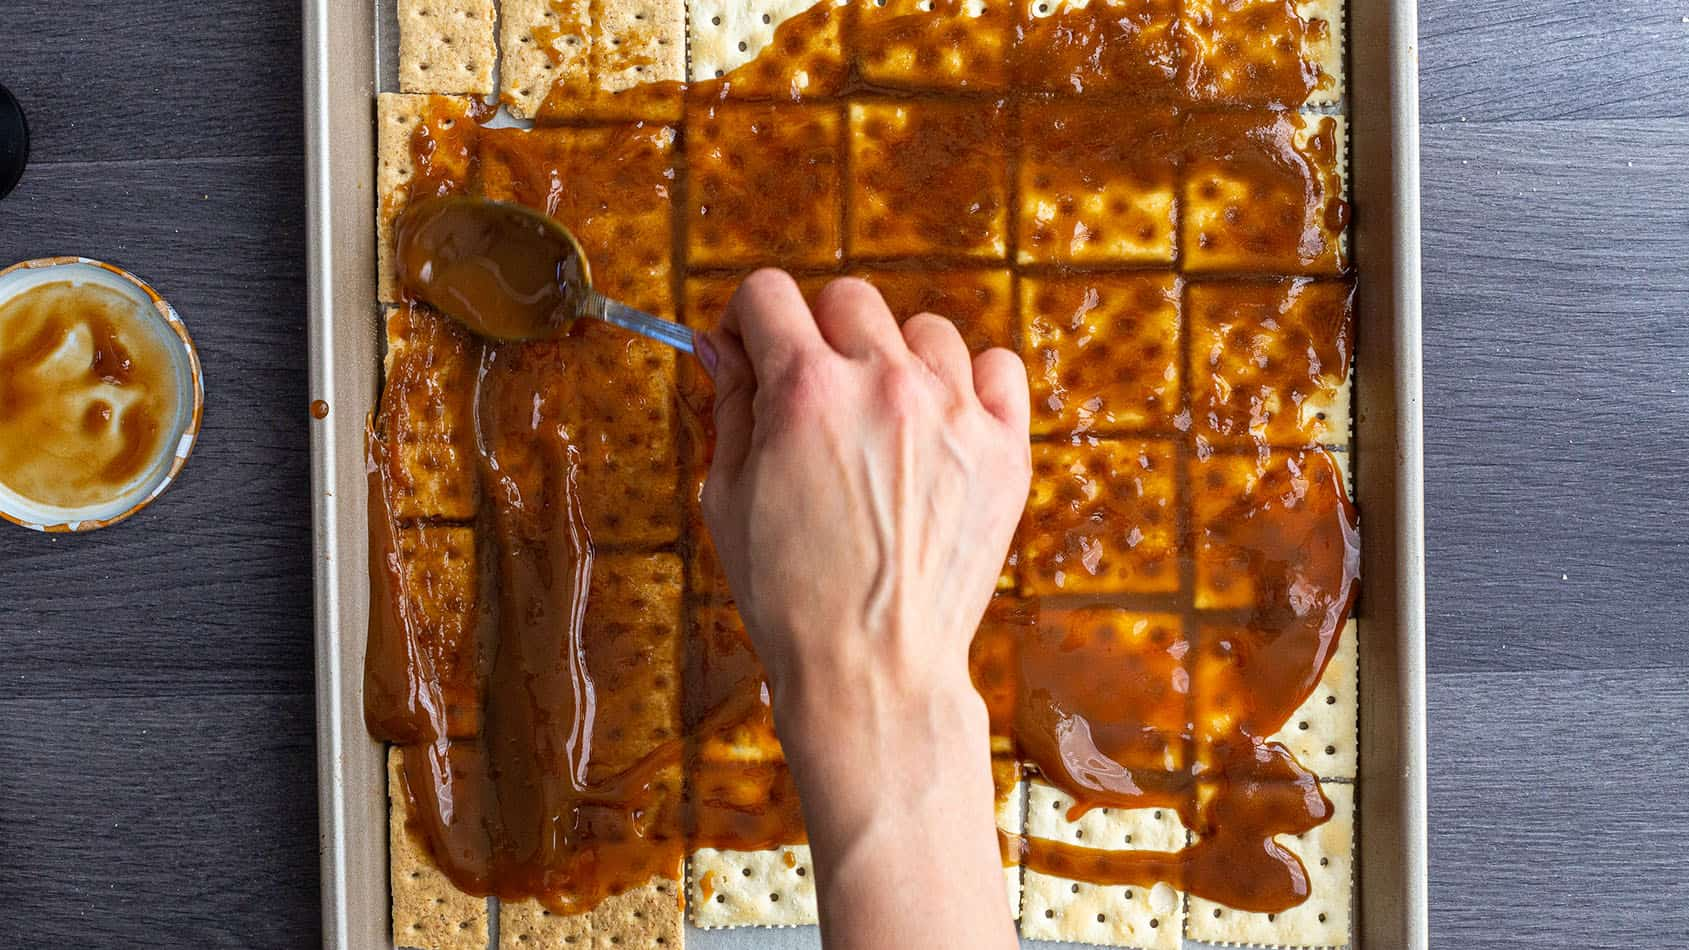 Toffee being spread over crackers on a sheet pan